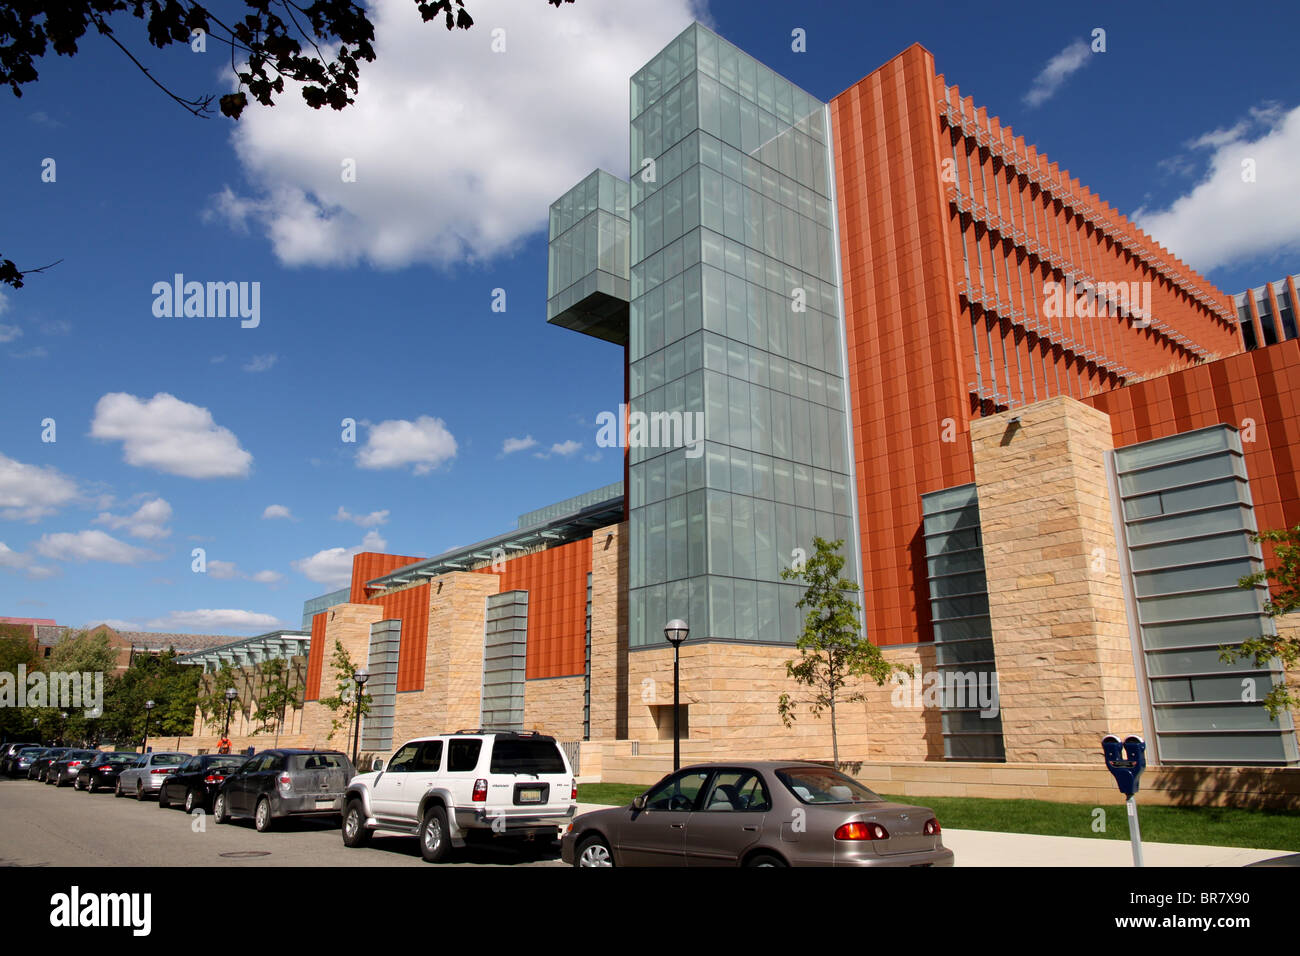 University Of Michigan Ann Arbor, Business School   Stock Image